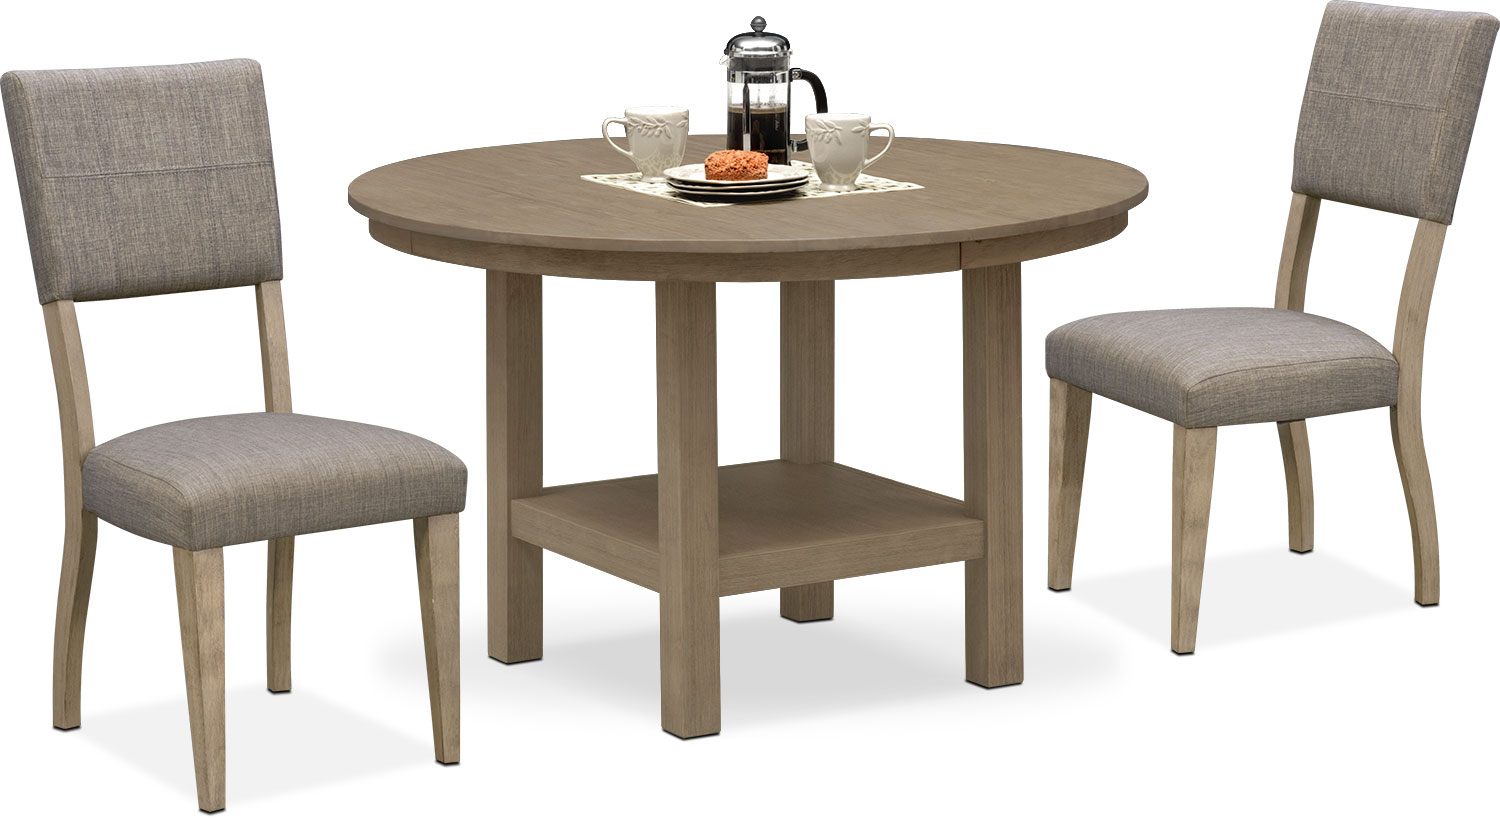 Dining Room Furniture - Tribeca Round Dining Table and 2 Upholstered Dining Chairs